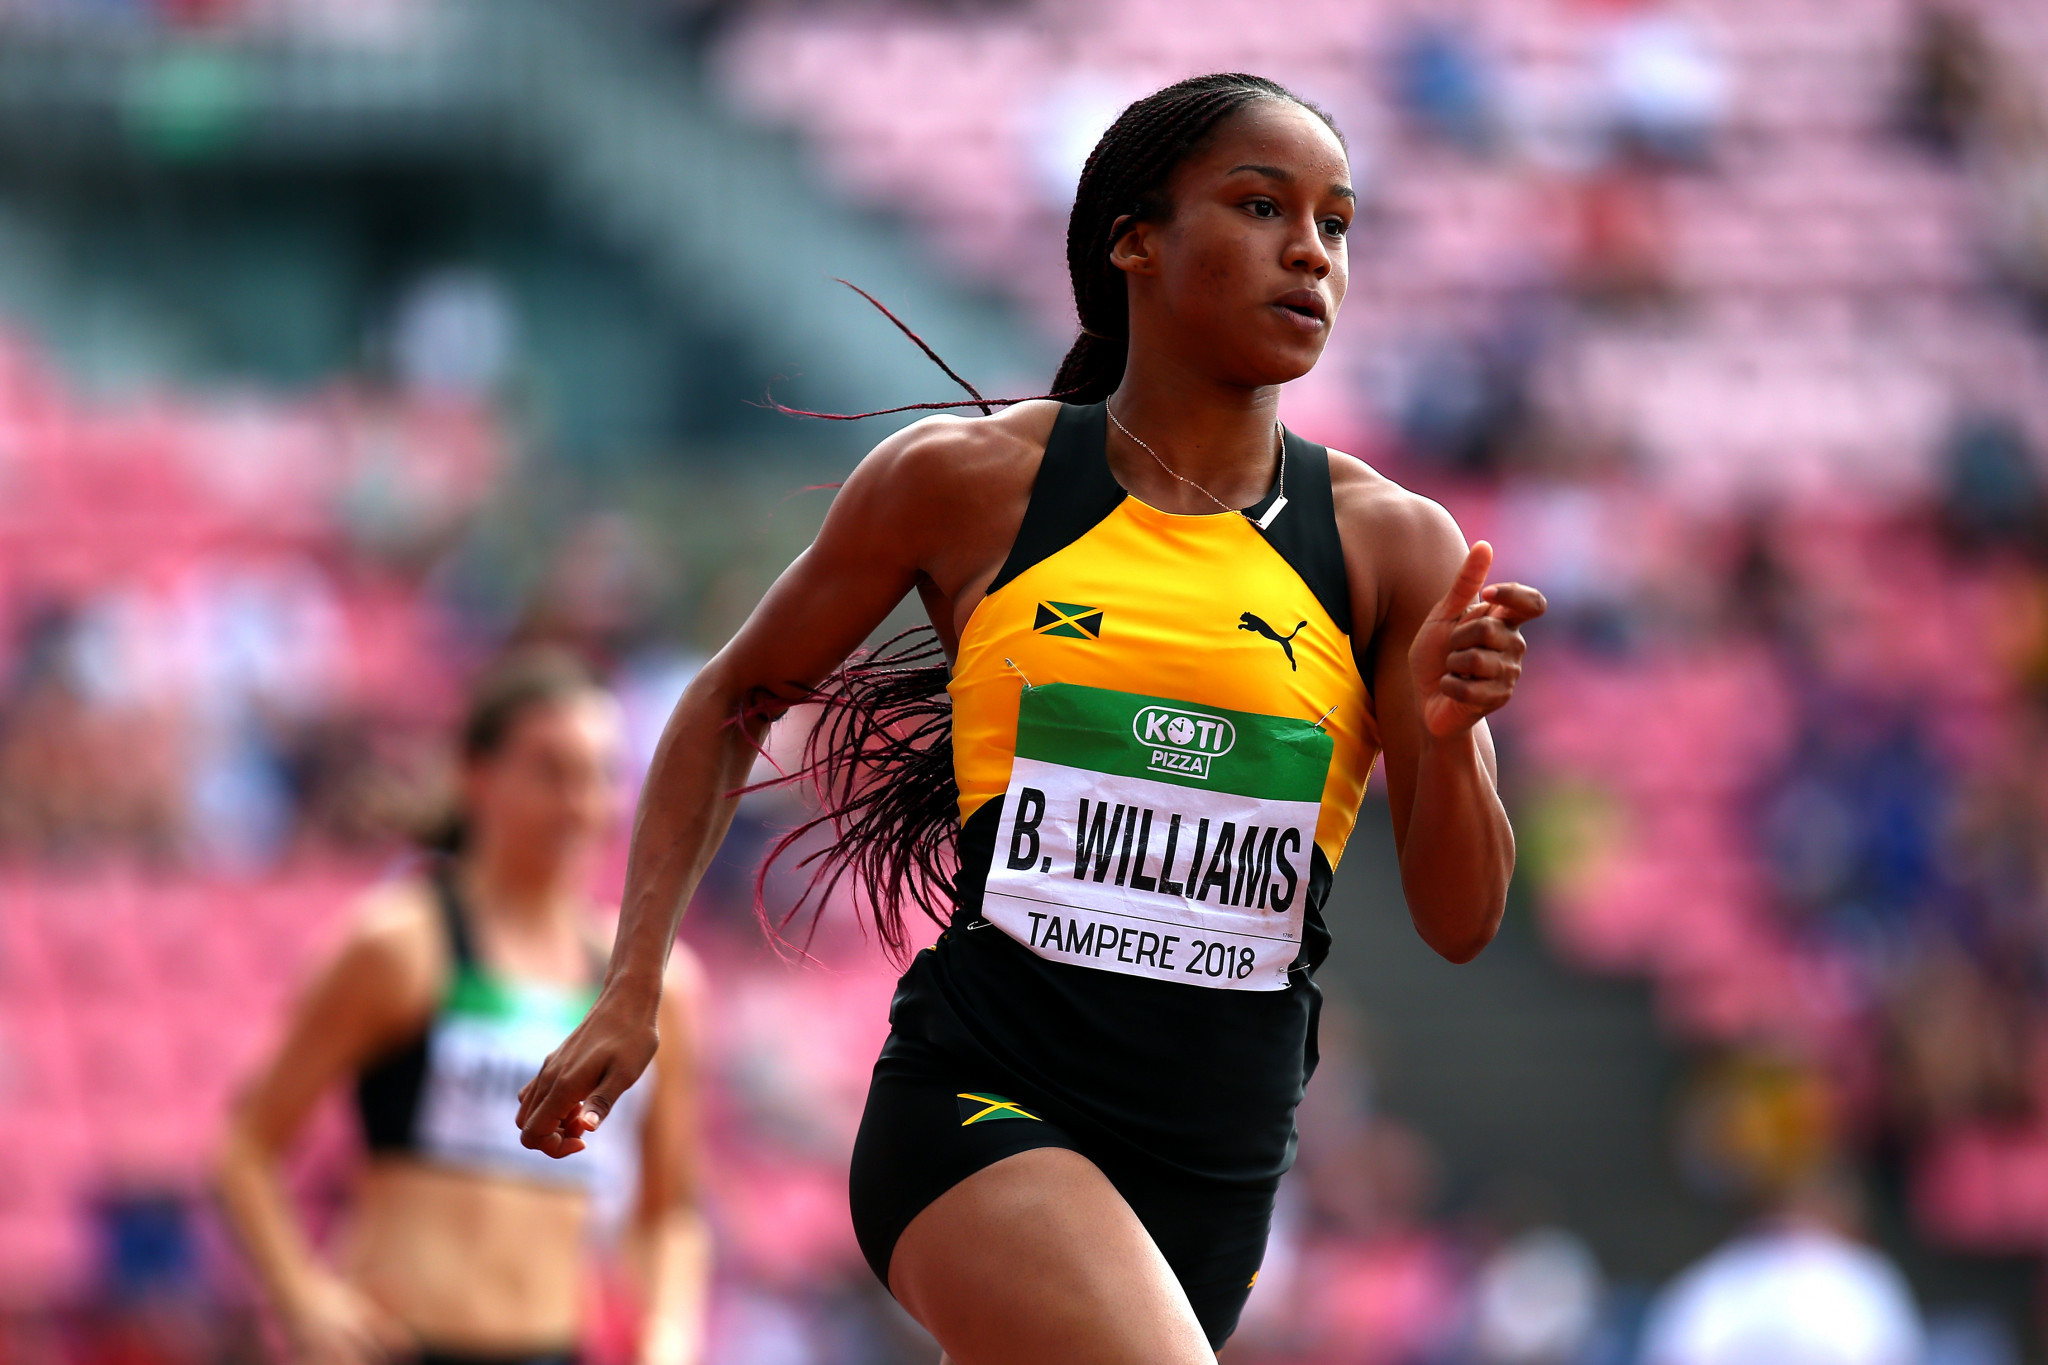 Jamaica's Briana Williams won 200m gold at the IAAF World Under-20 Championships in Tampere ©Getty Images